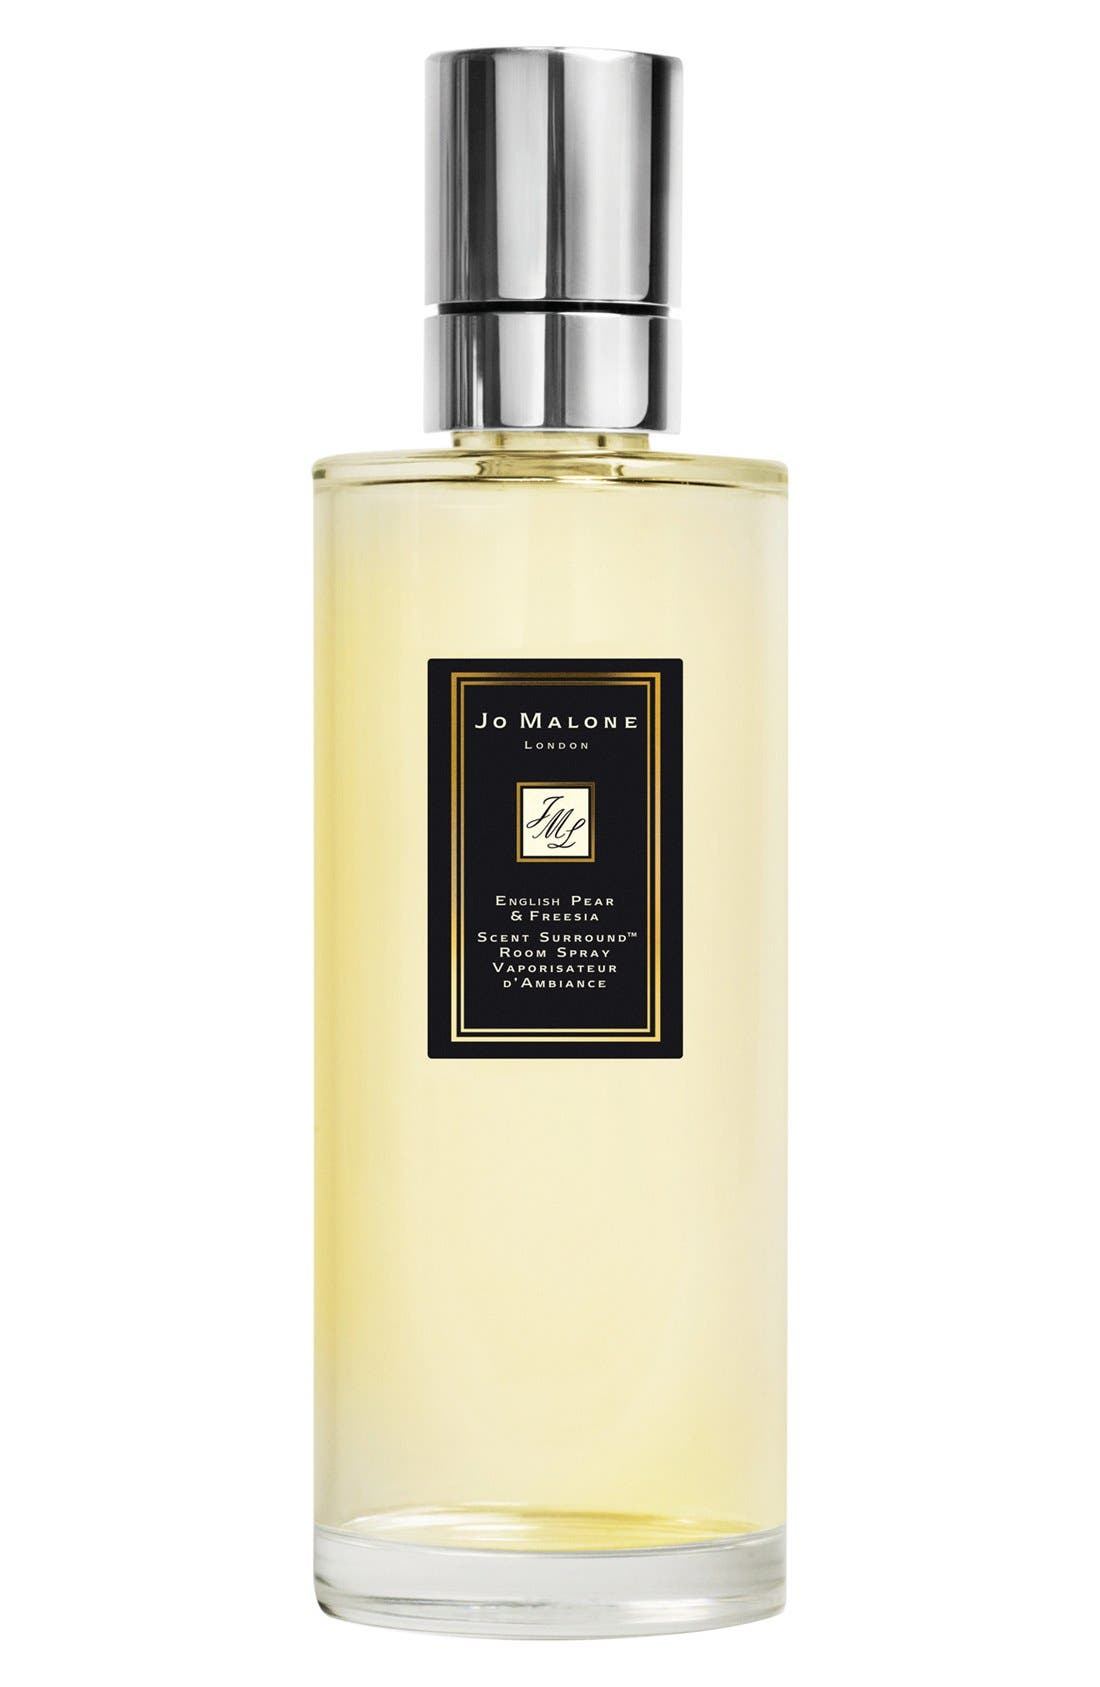 Alternate Image 1 Selected - Jo Malone™ 'English Pear & Freesia' Scent Surround™ Room Spray